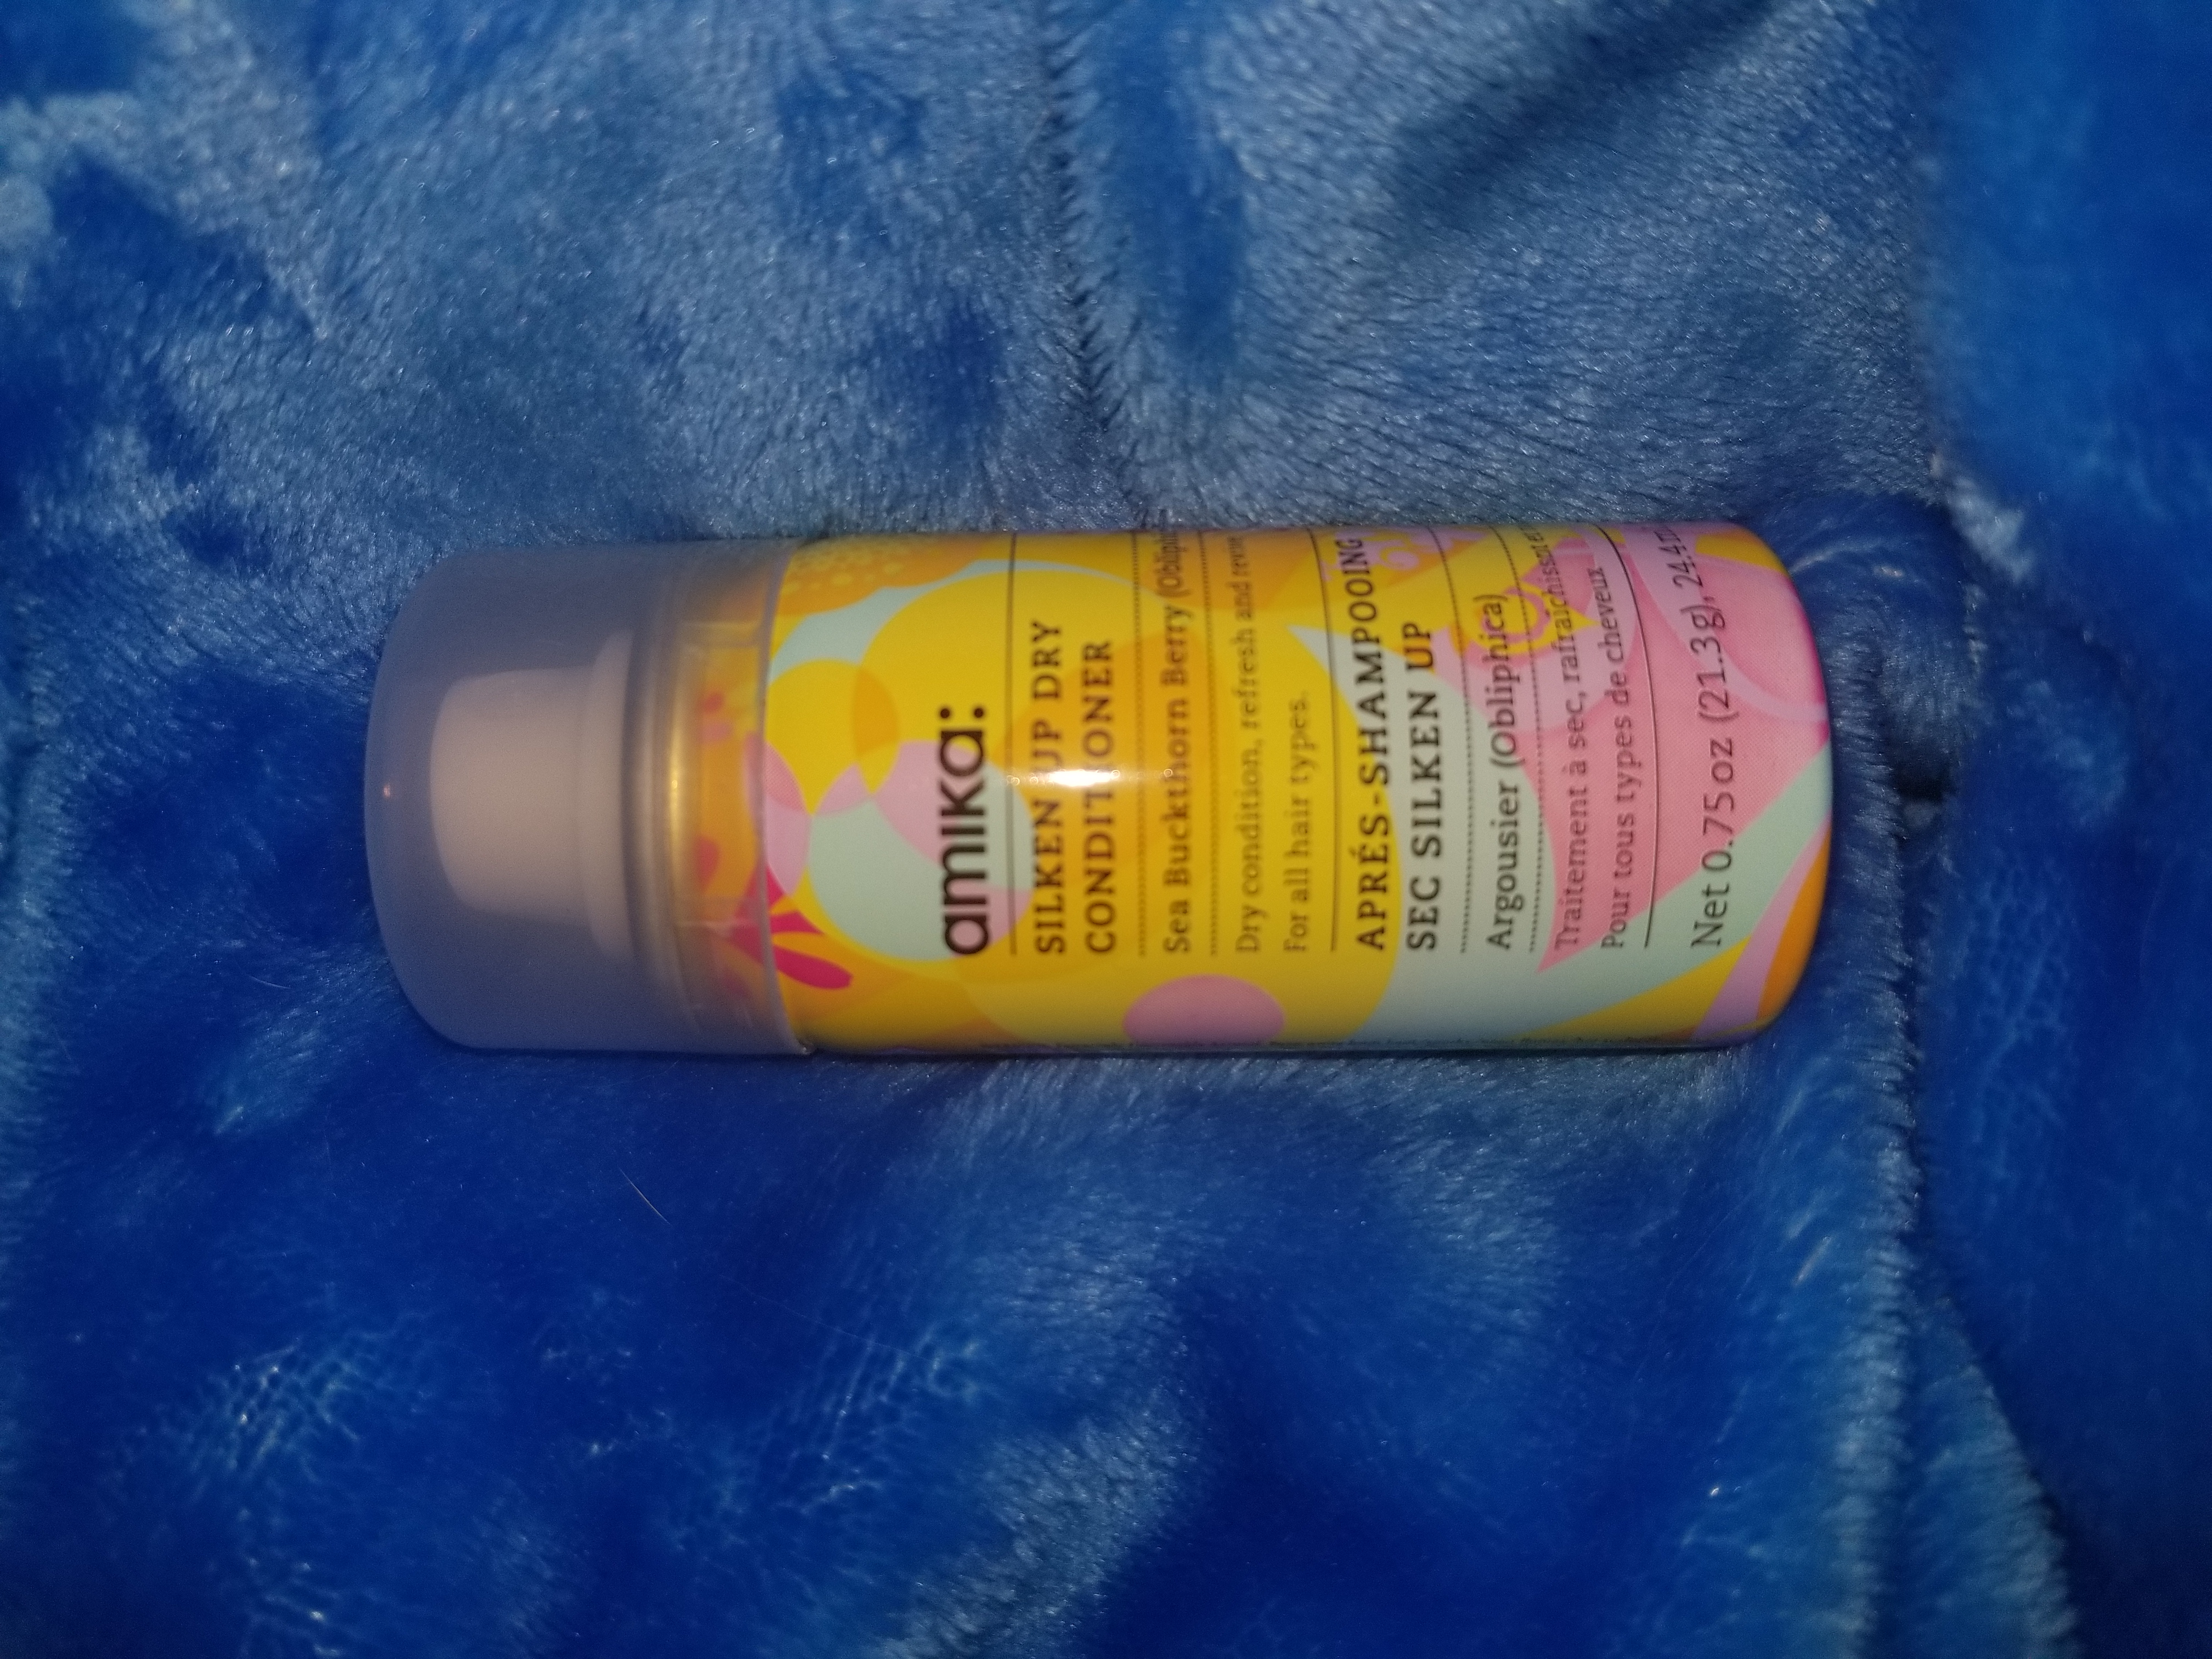 amika Silken Up Dry Conditioner - 1 oz. uploaded by Leah B.